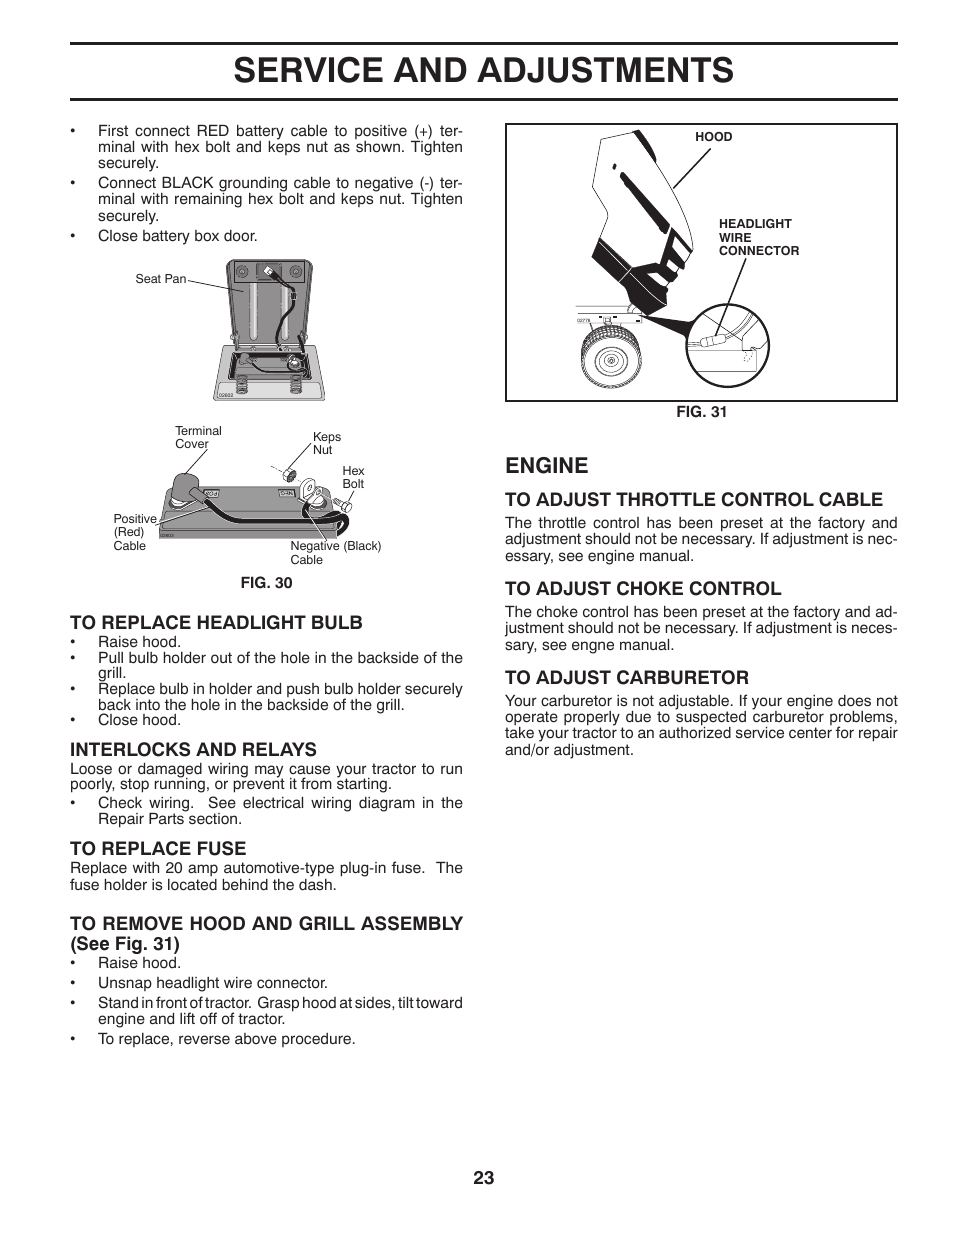 hight resolution of service and adjustments engine husqvarna 2246ls user manual page 23 44